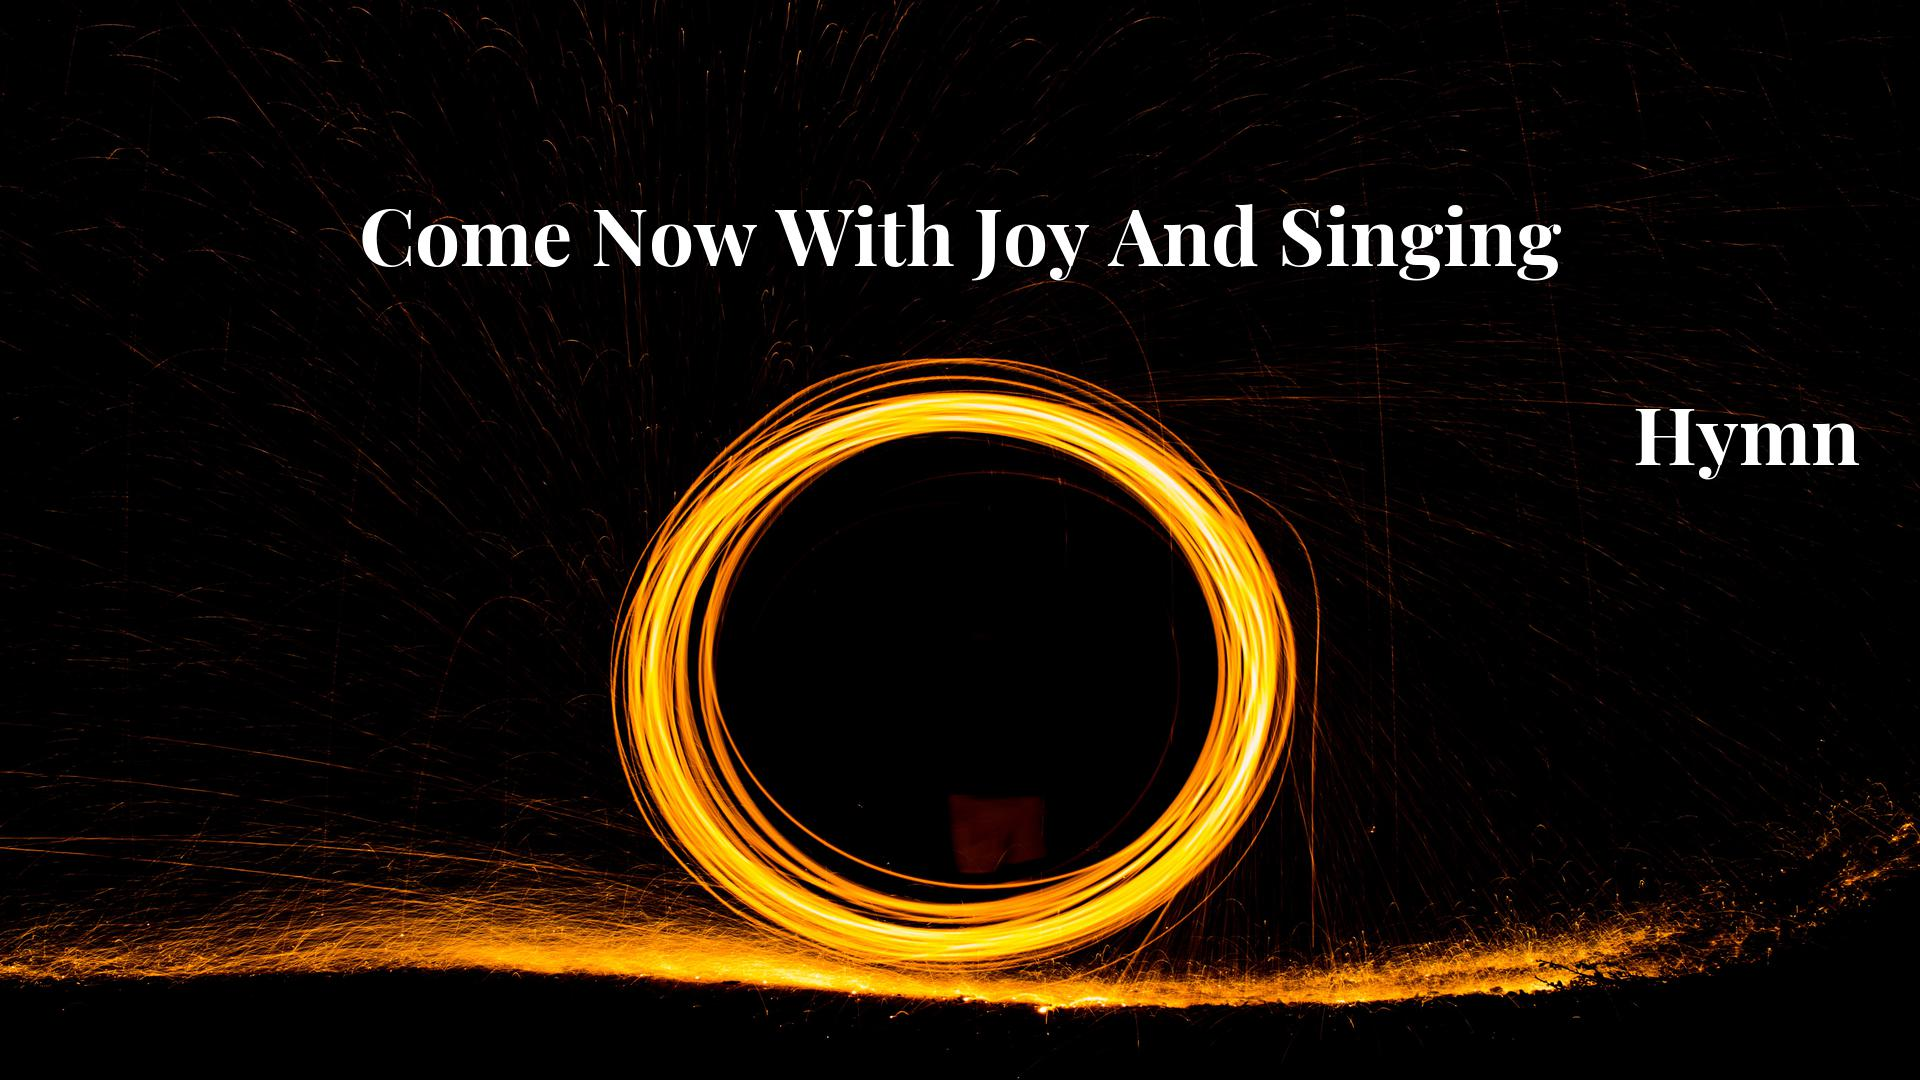 Come Now With Joy And Singing - Hymn